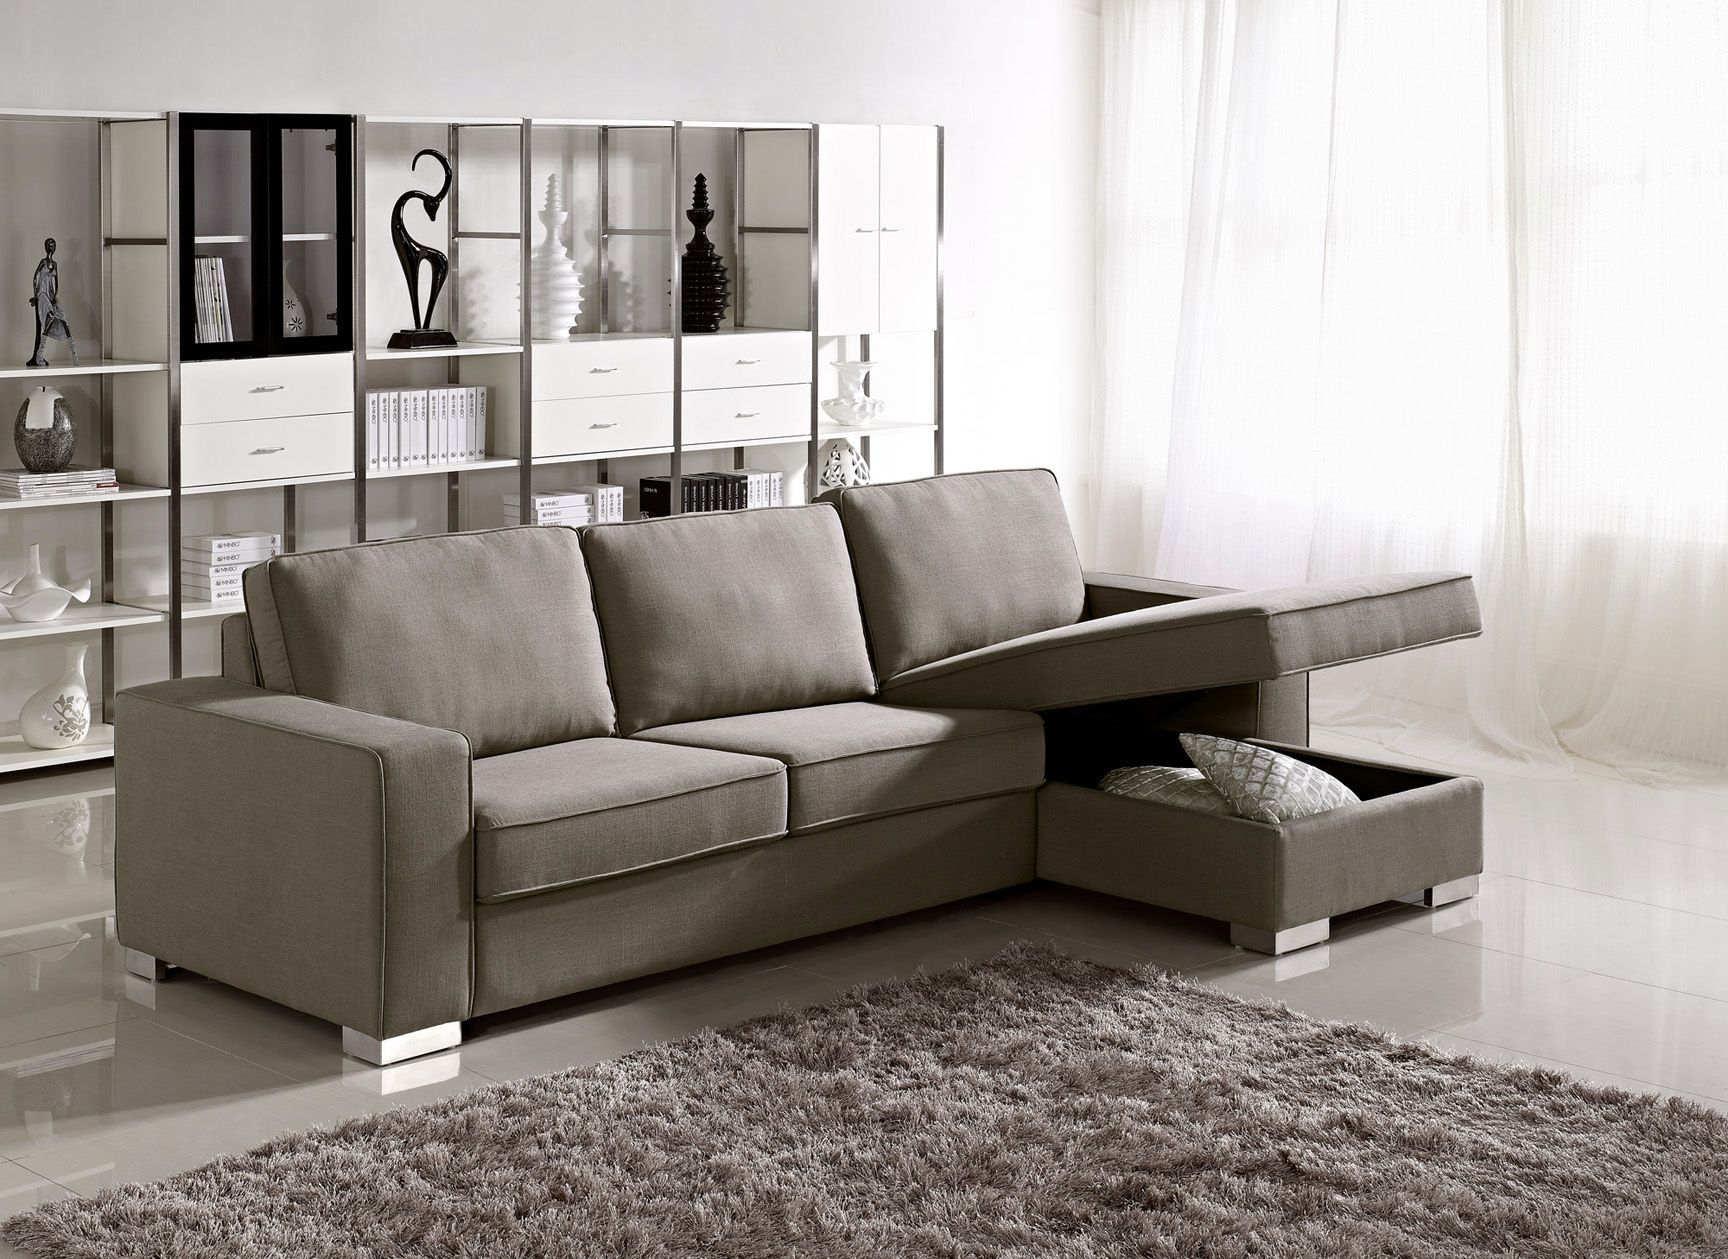 Emejing Apartment Sectional Sofa House Design Interior